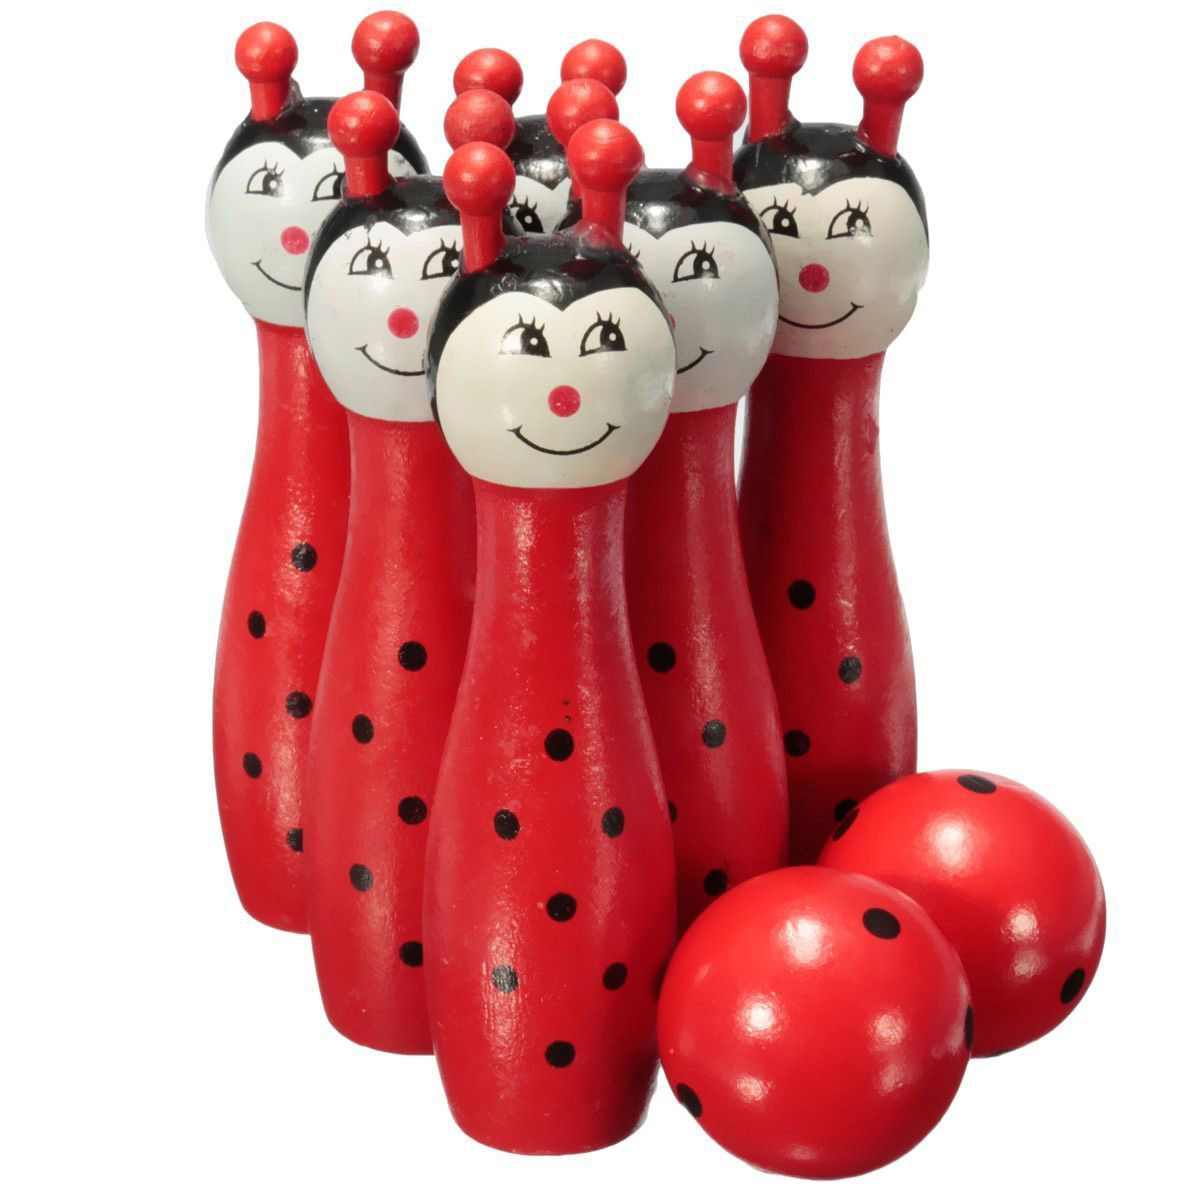 KEOL Best Sale Wooden Bowling Ball Skittle Animal Shape Game For Kids Children Toy Red